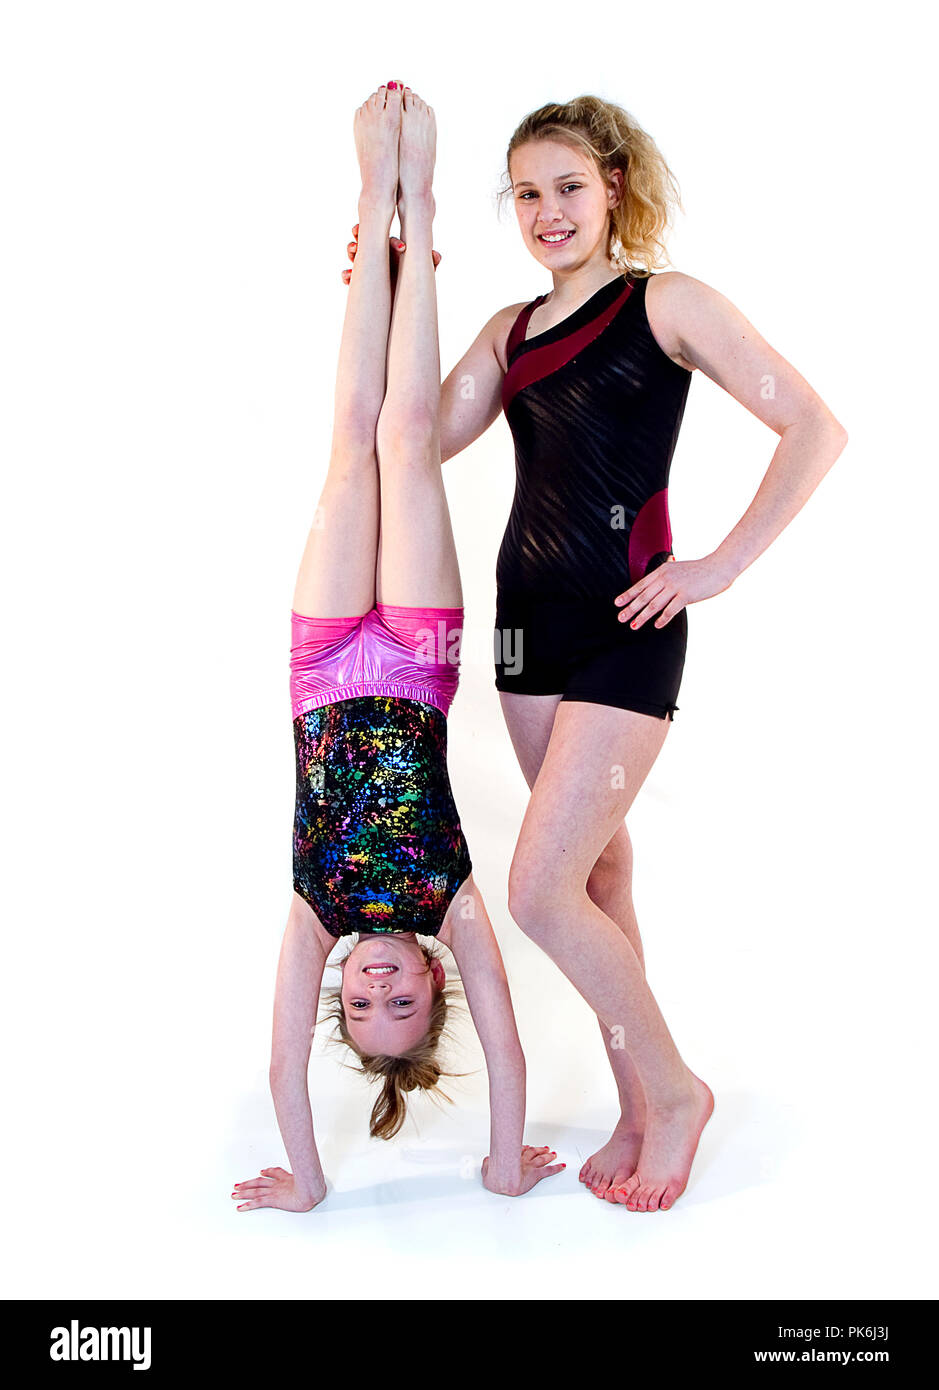 Two beautiful young girls having fun working on their gymnastics.  Some individual images posing different positions and some where they work together. - Stock Image